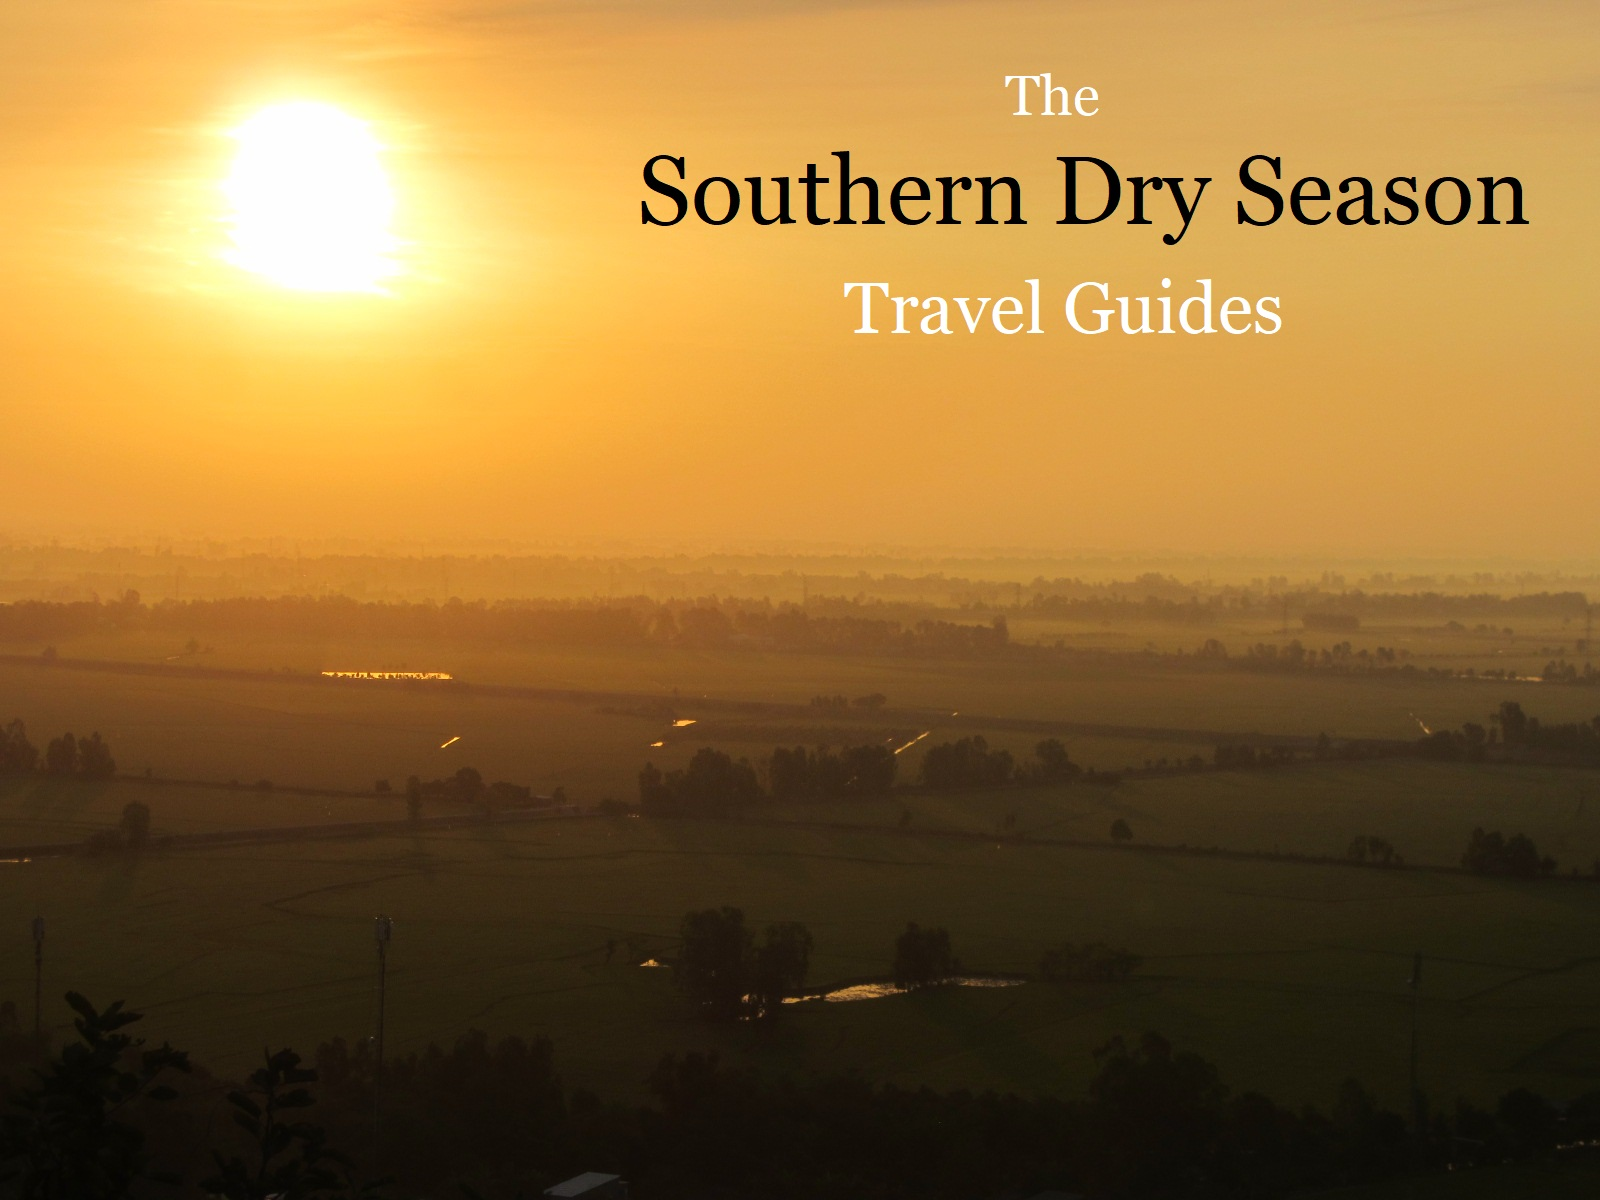 The Southern Dry Season in Vietnam: Travel Guide